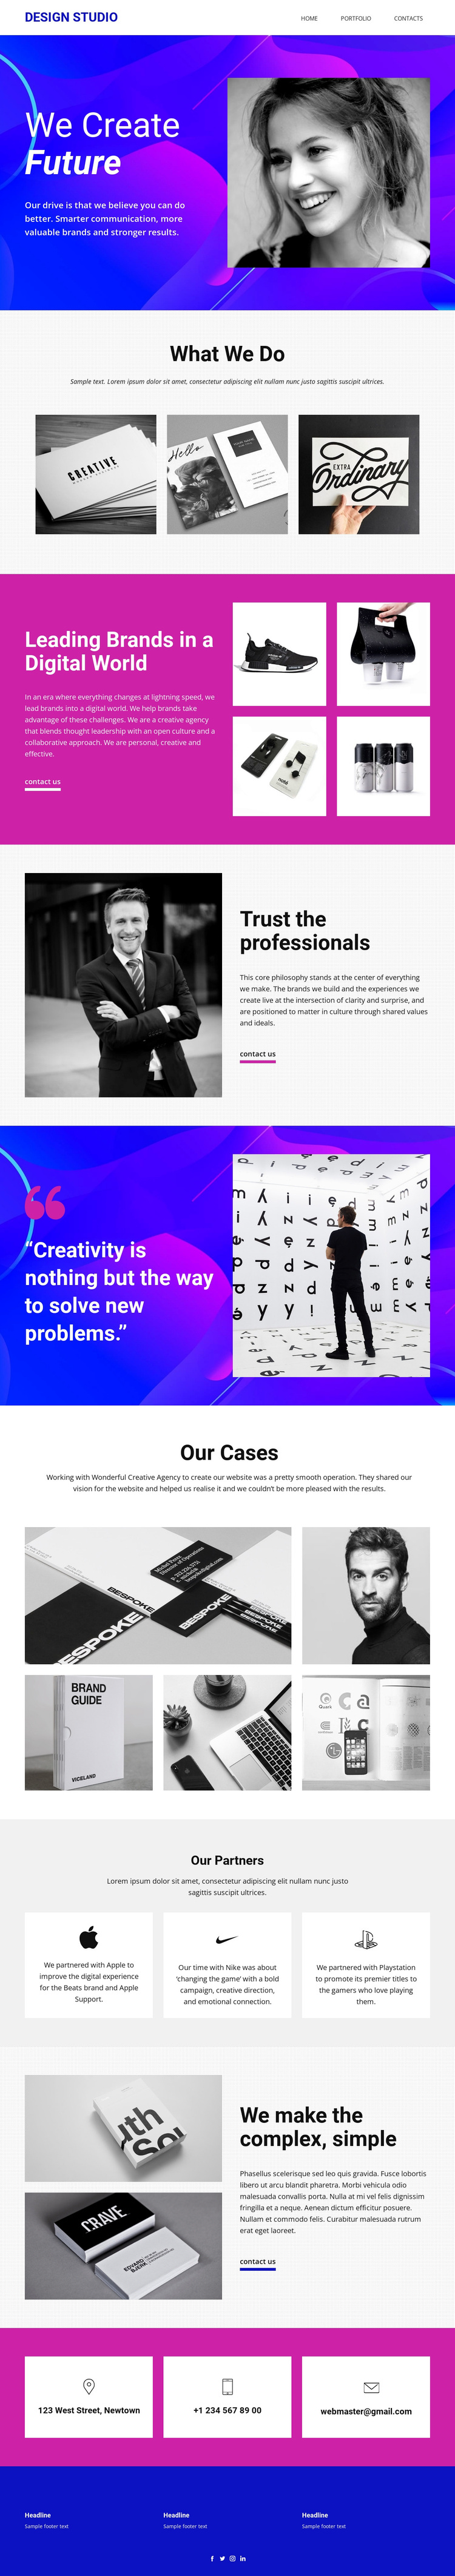 We develop the brand's core Template